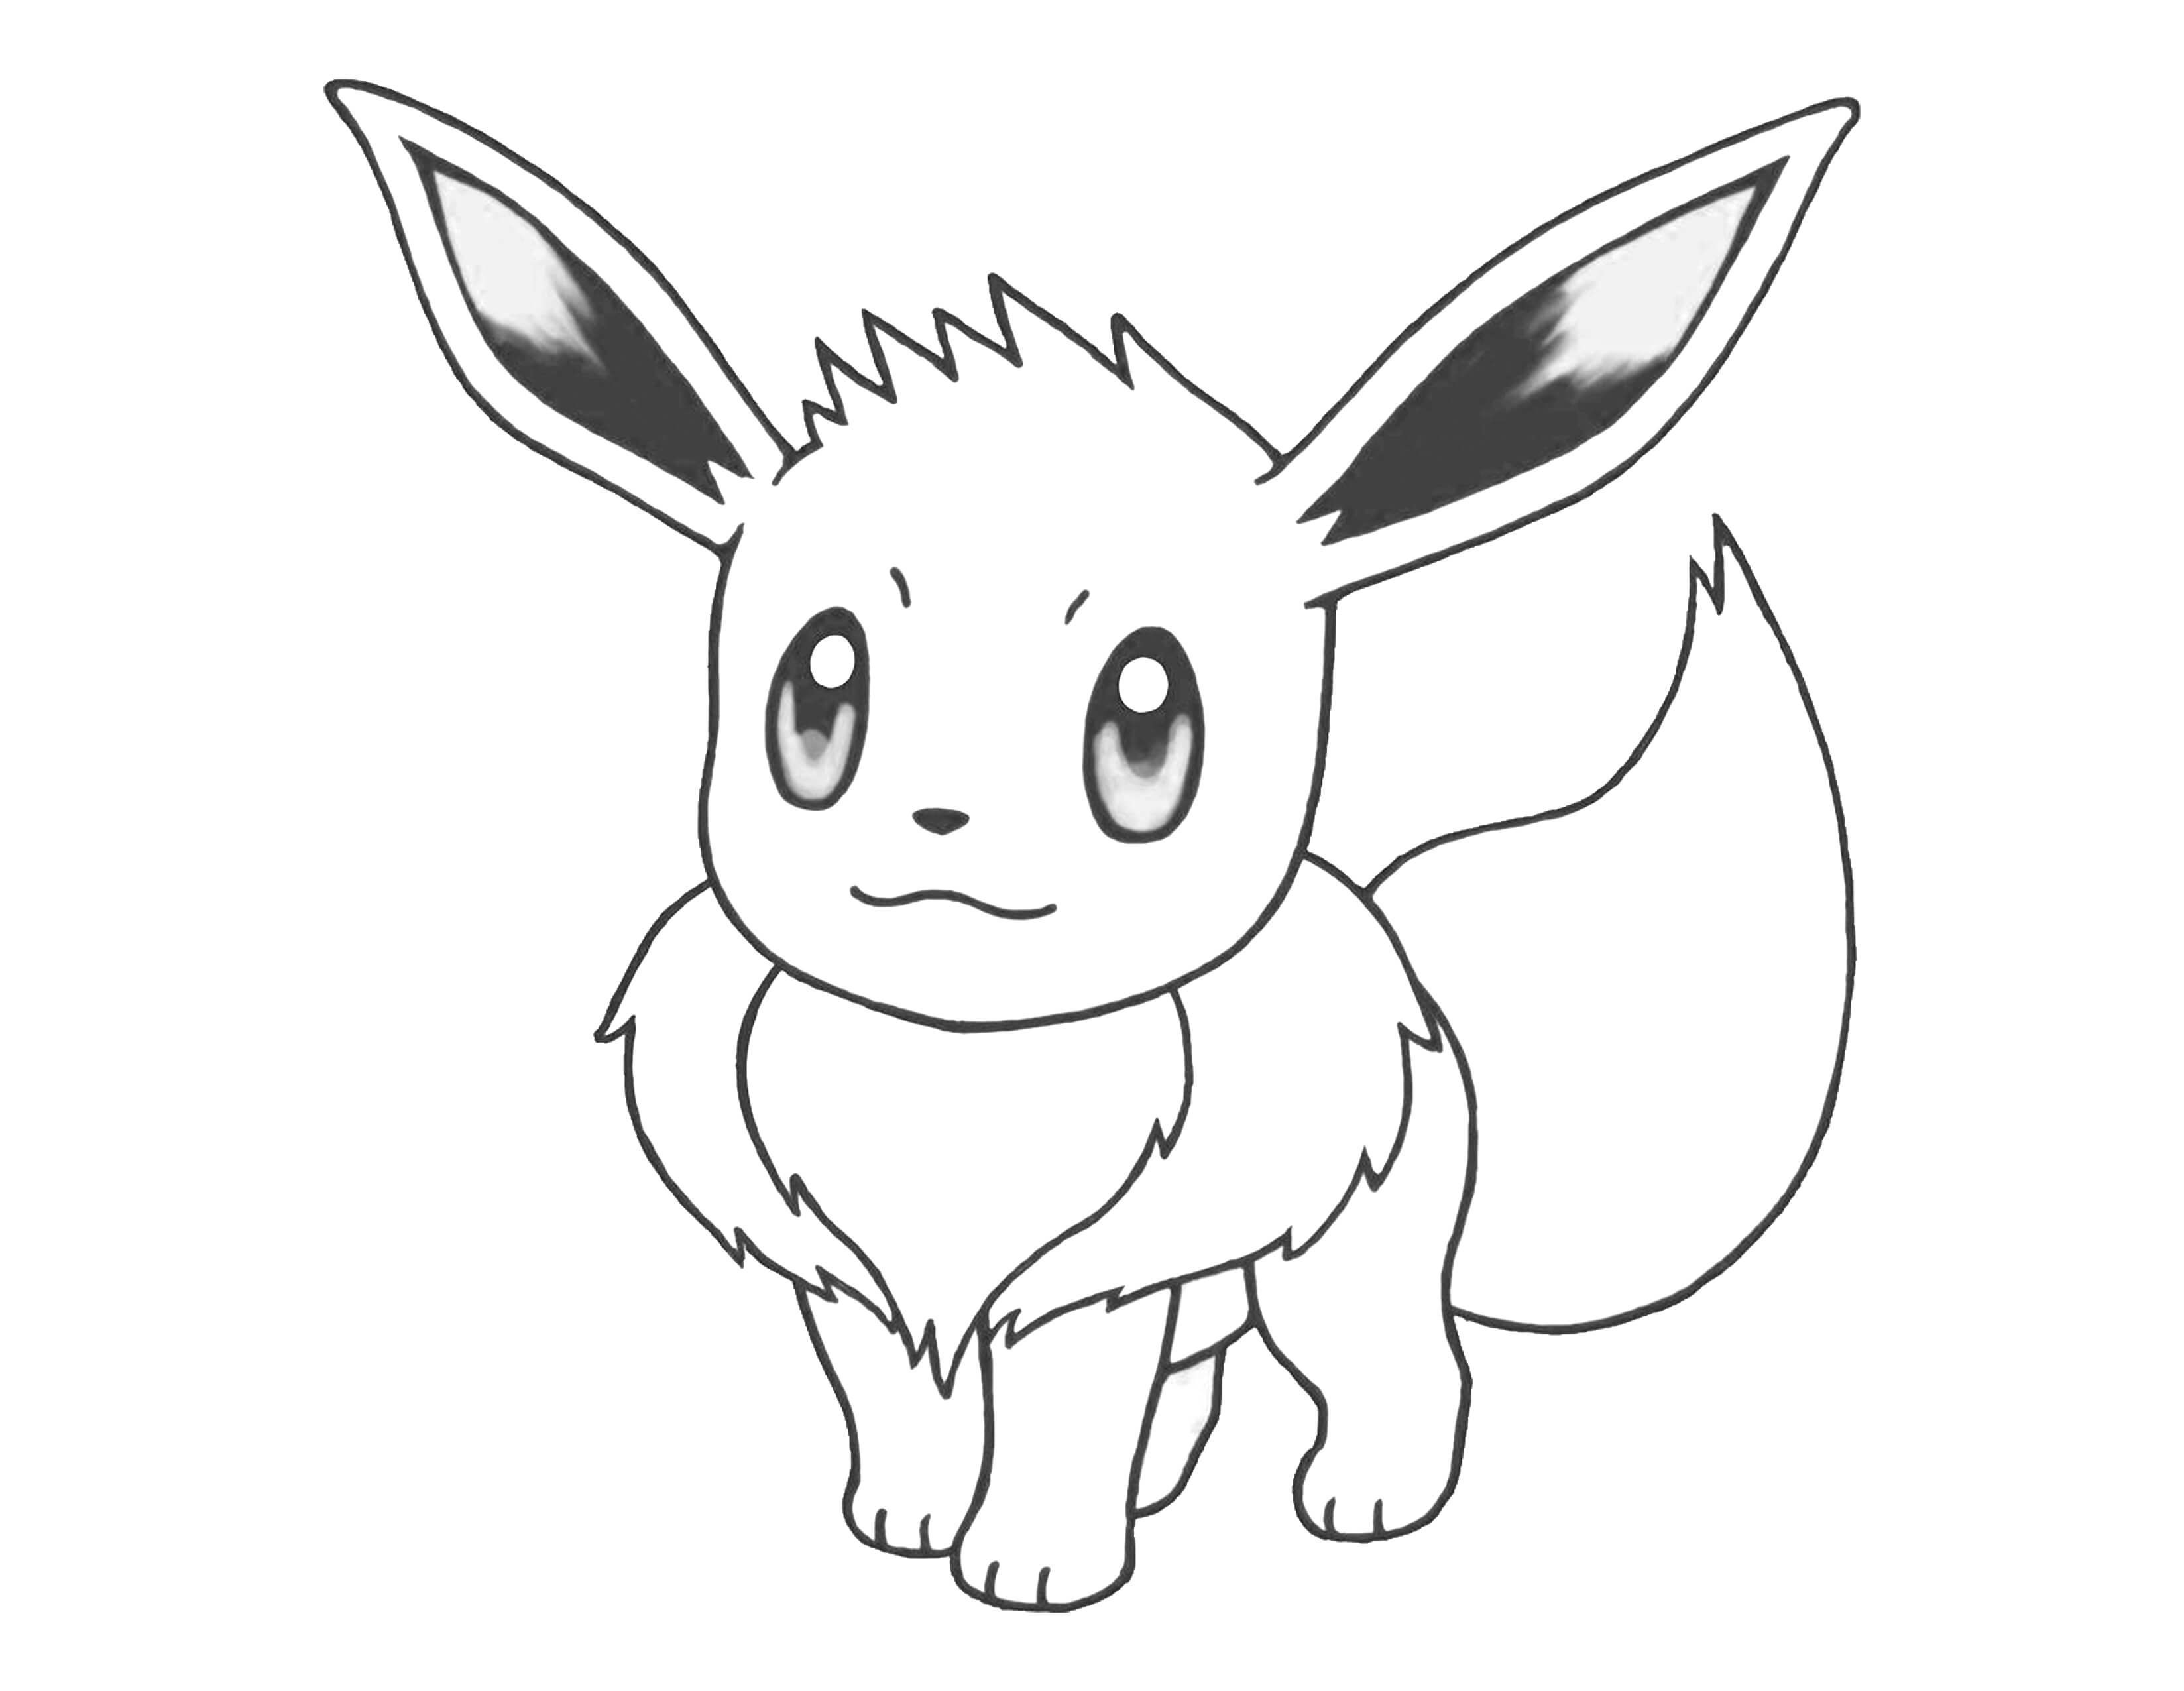 Pokemon printable coloring pages coloring pages kids derp derp